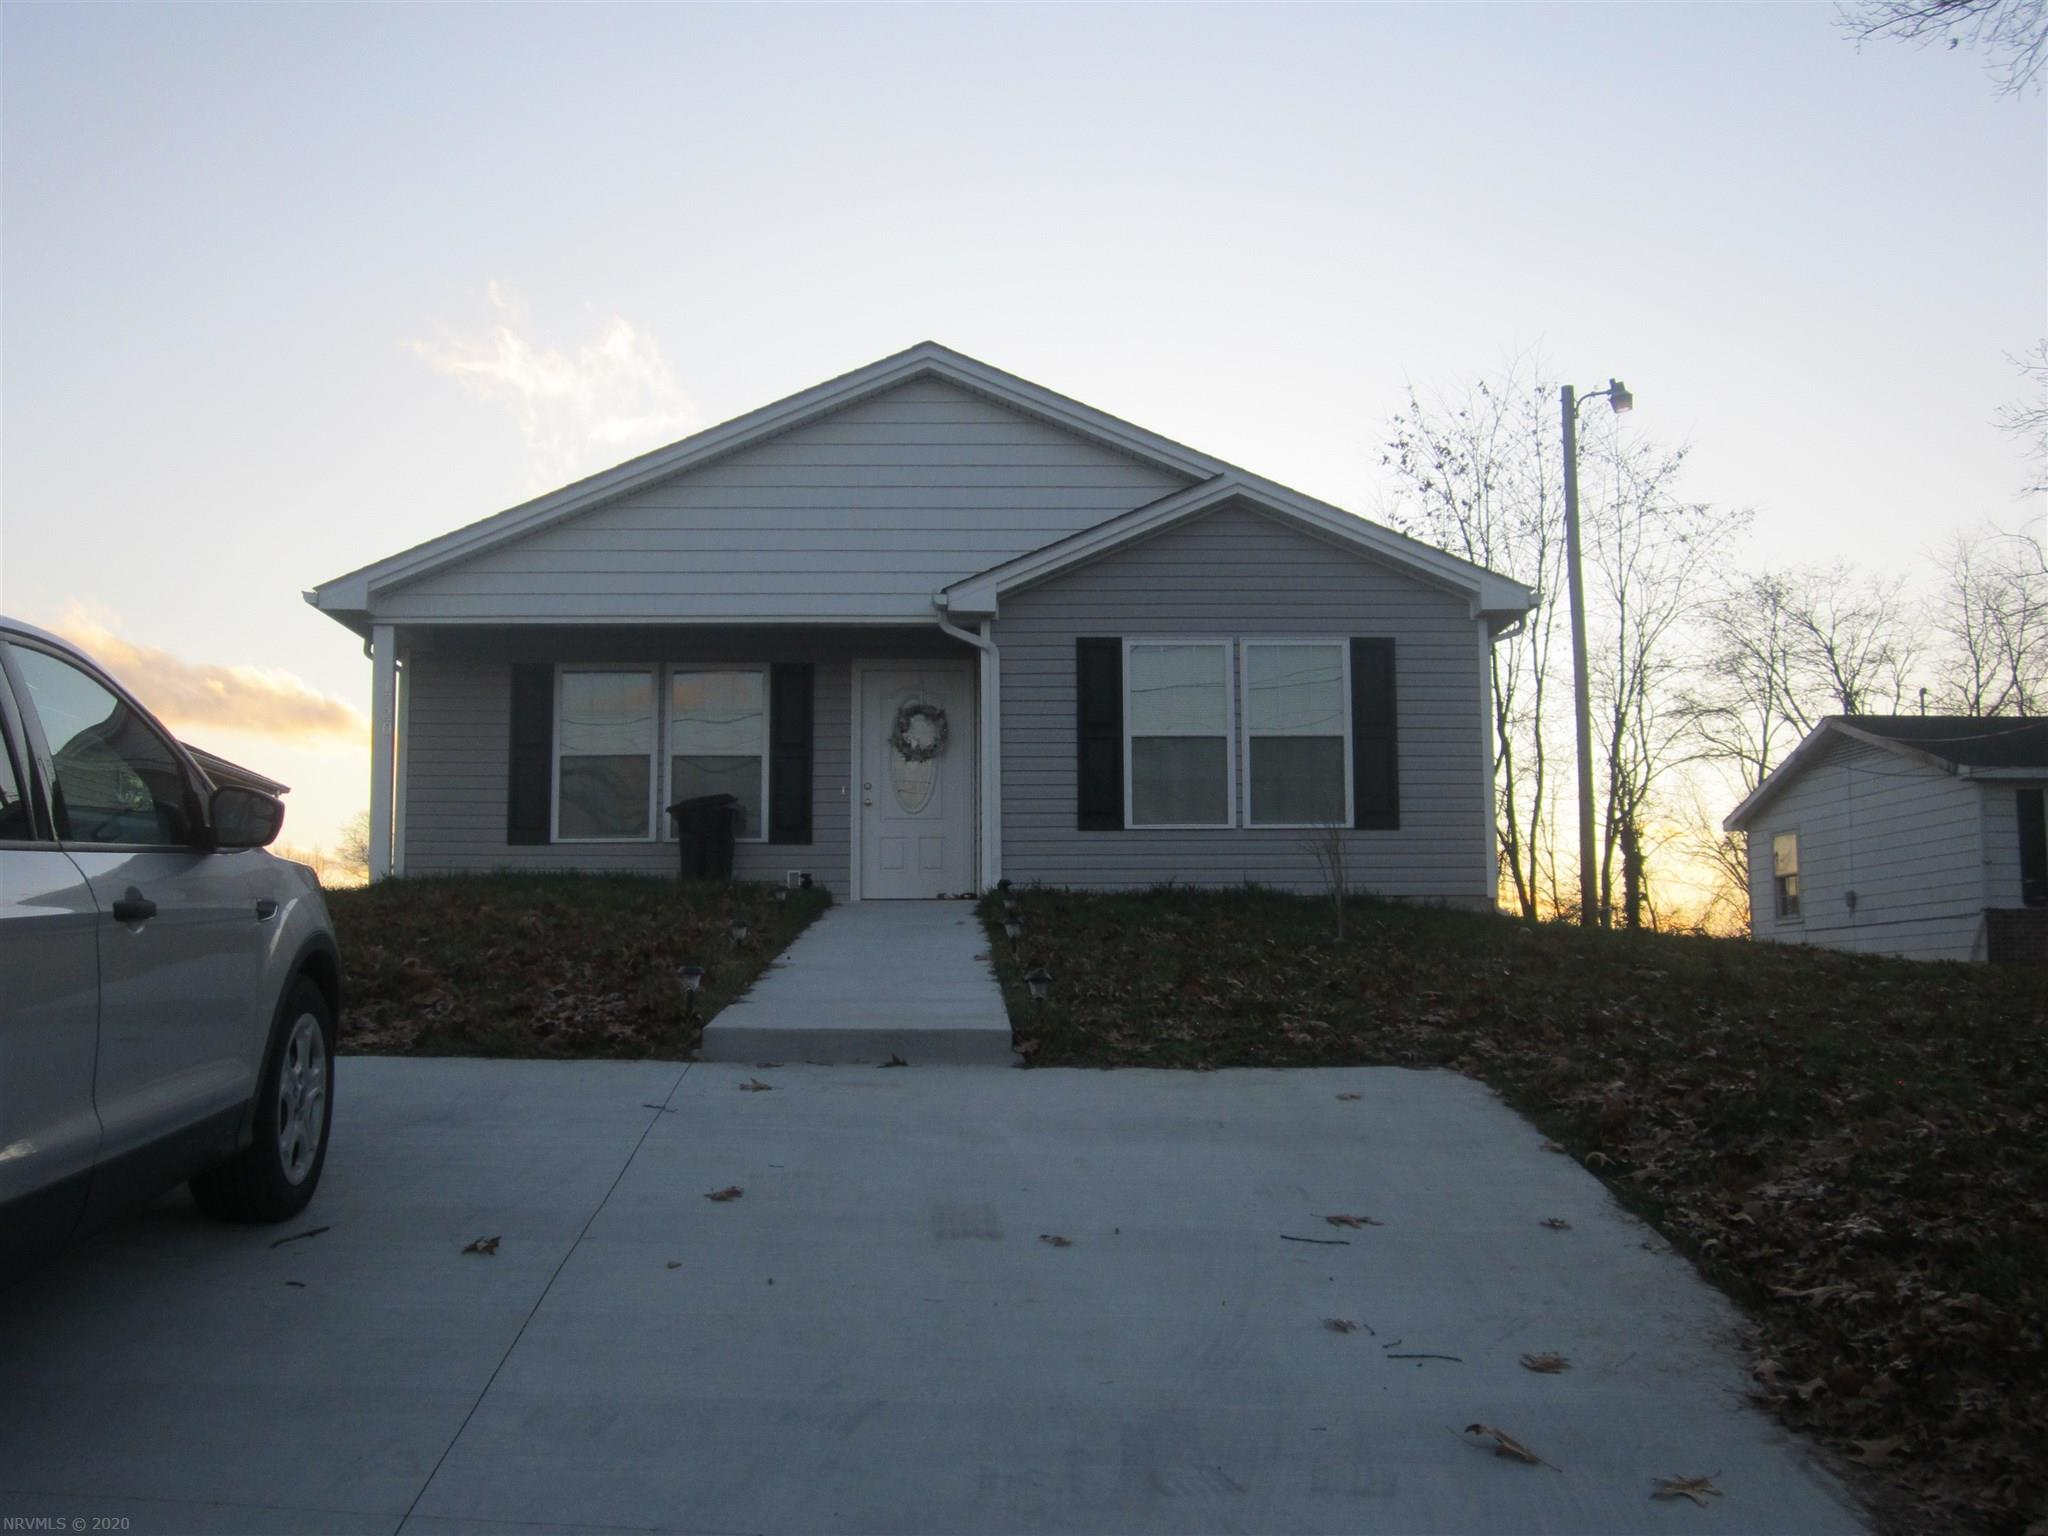 New Construction, Nice 3 Bedroom 2 Bath House. This Home offers an open Floor Plan and has 1,500 finished square feet. The Concrete Driveway and Covered porch makes for a nice added bonus. There is also a big deck around back that offers some privacy.